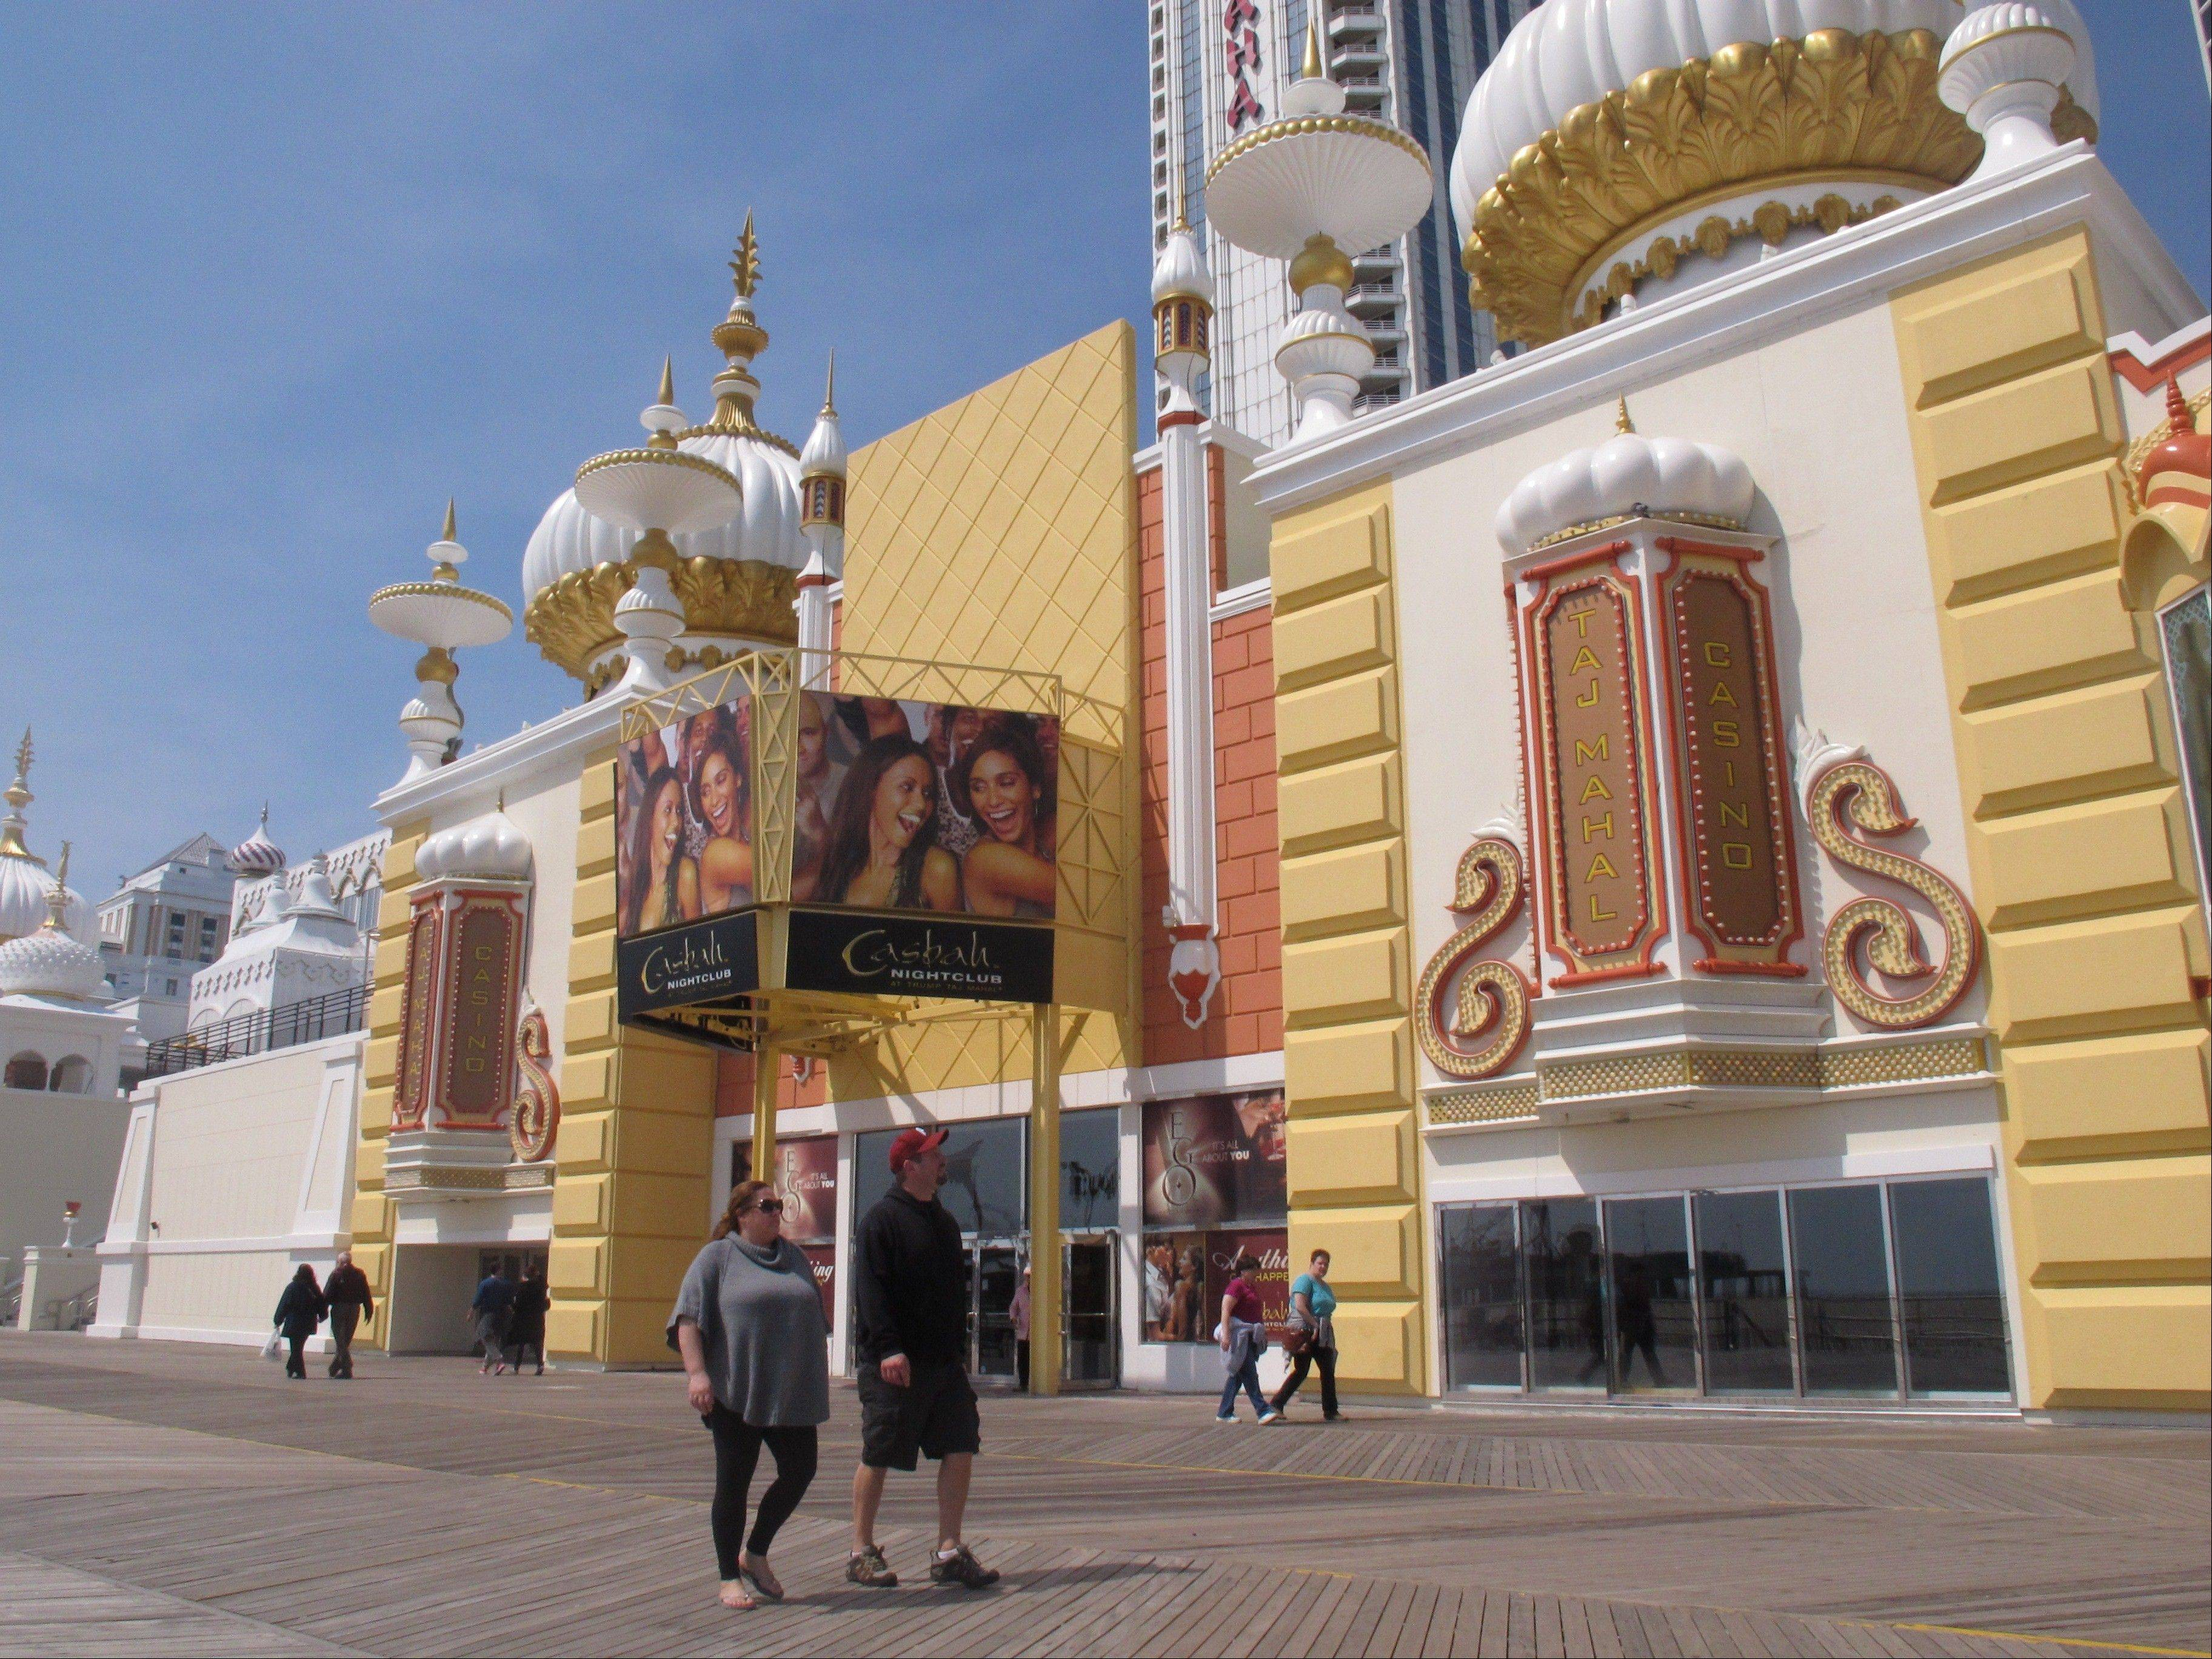 Pedestrians on the Atlantic City N.J. boardwalk look up at the newly renovated facade of the Trump Taj Mahal Casino Resort. Atlantic City tourism officials have unveiled a new $20 million advertising campaign.